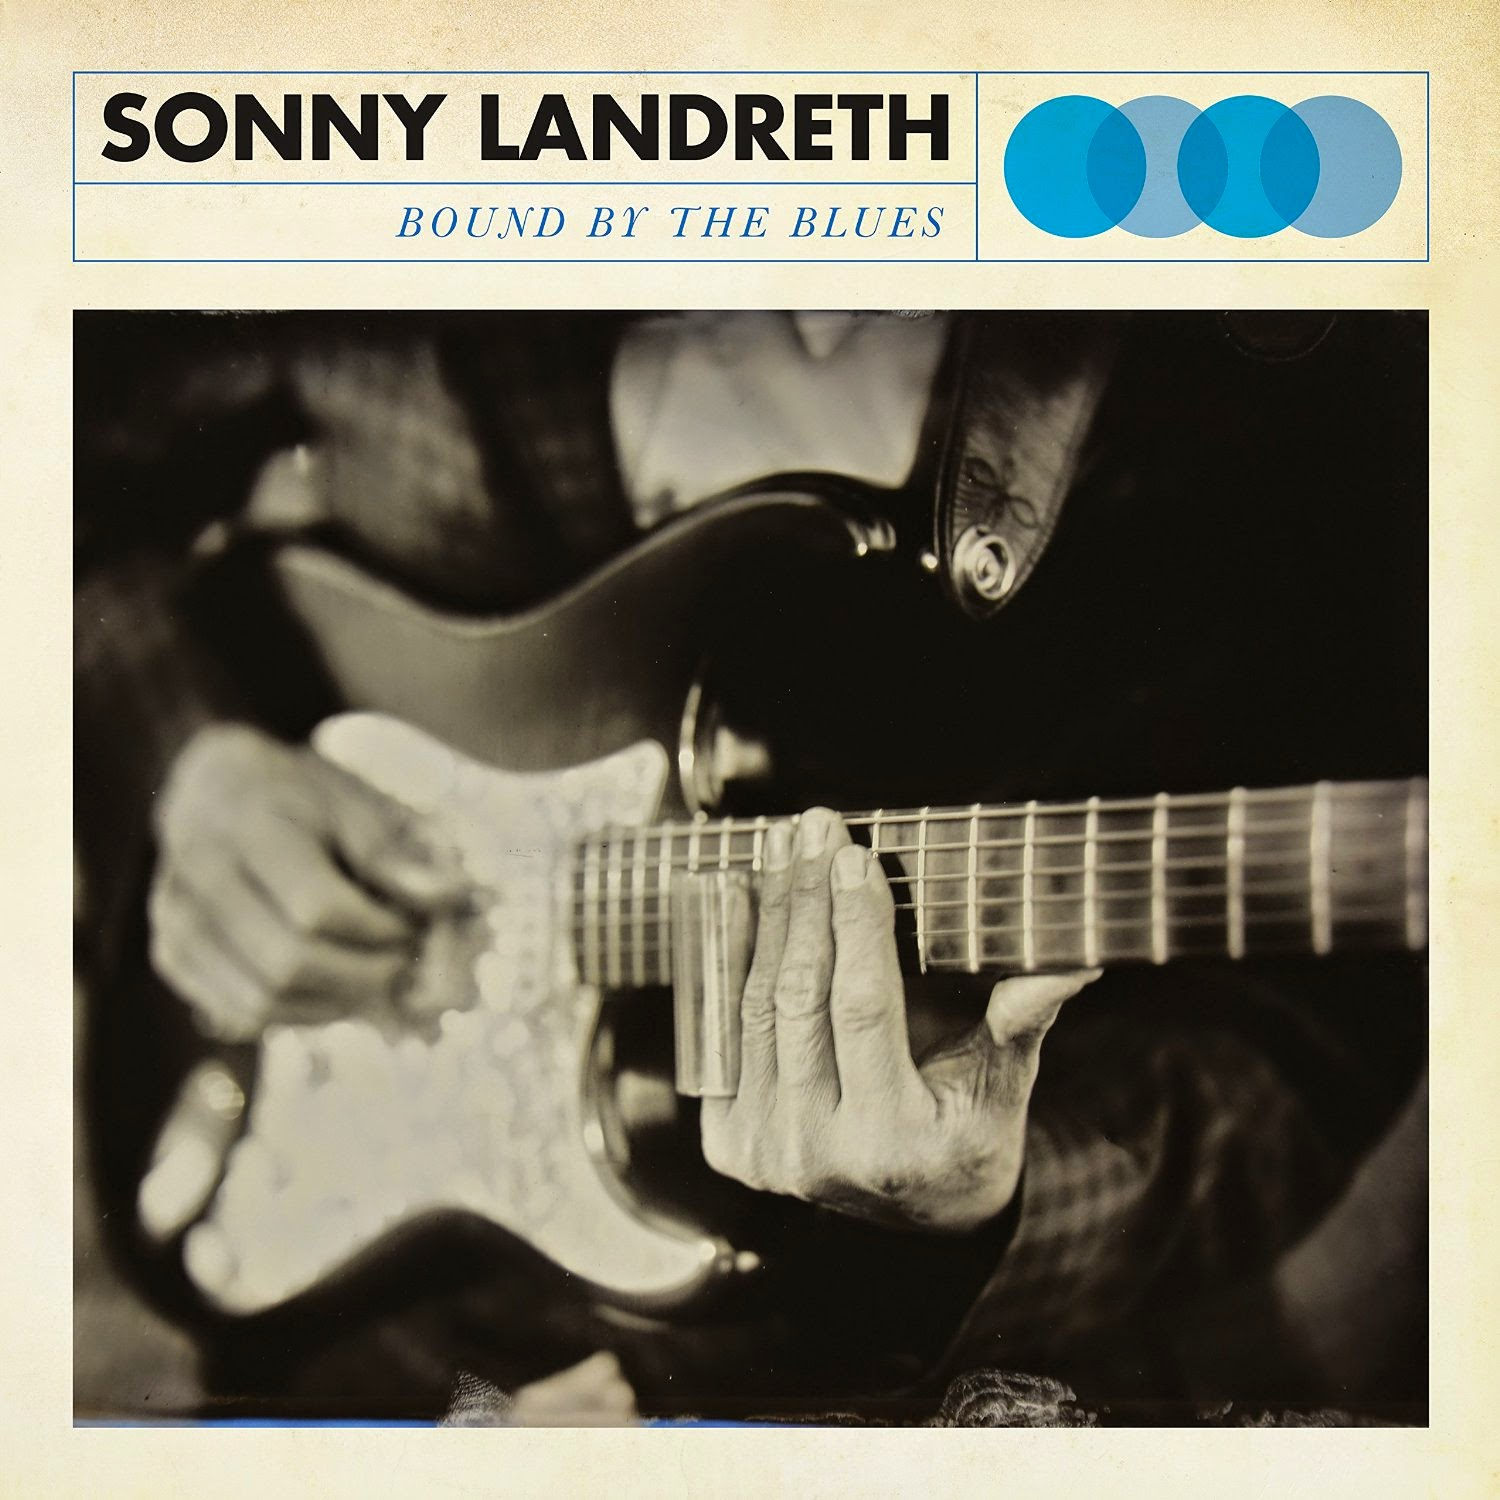 Sonny Landreth's Bound By The Blues